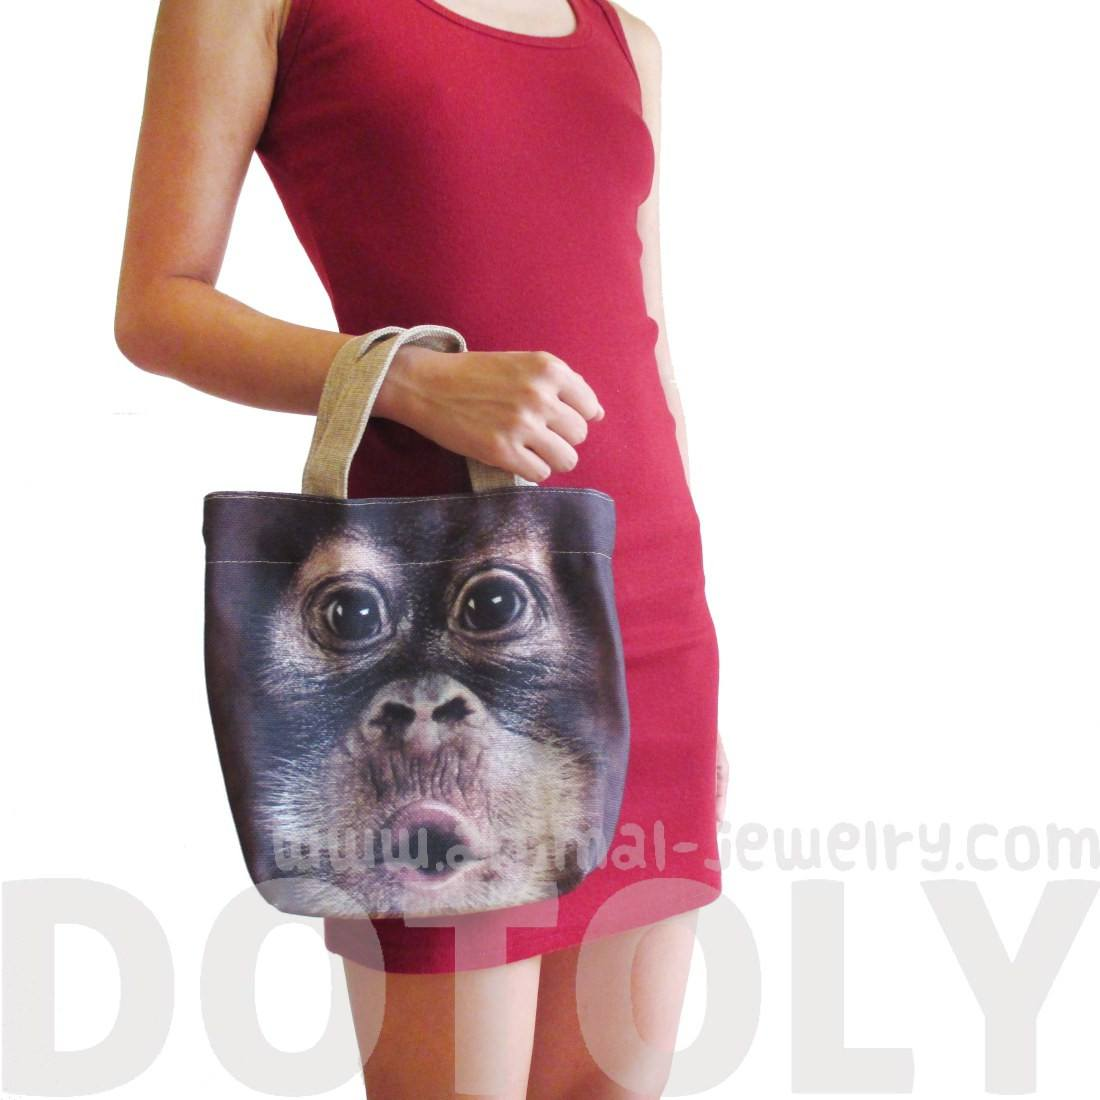 Small Orangutan Monkey Face Print Fabric Lunch Tote Bag